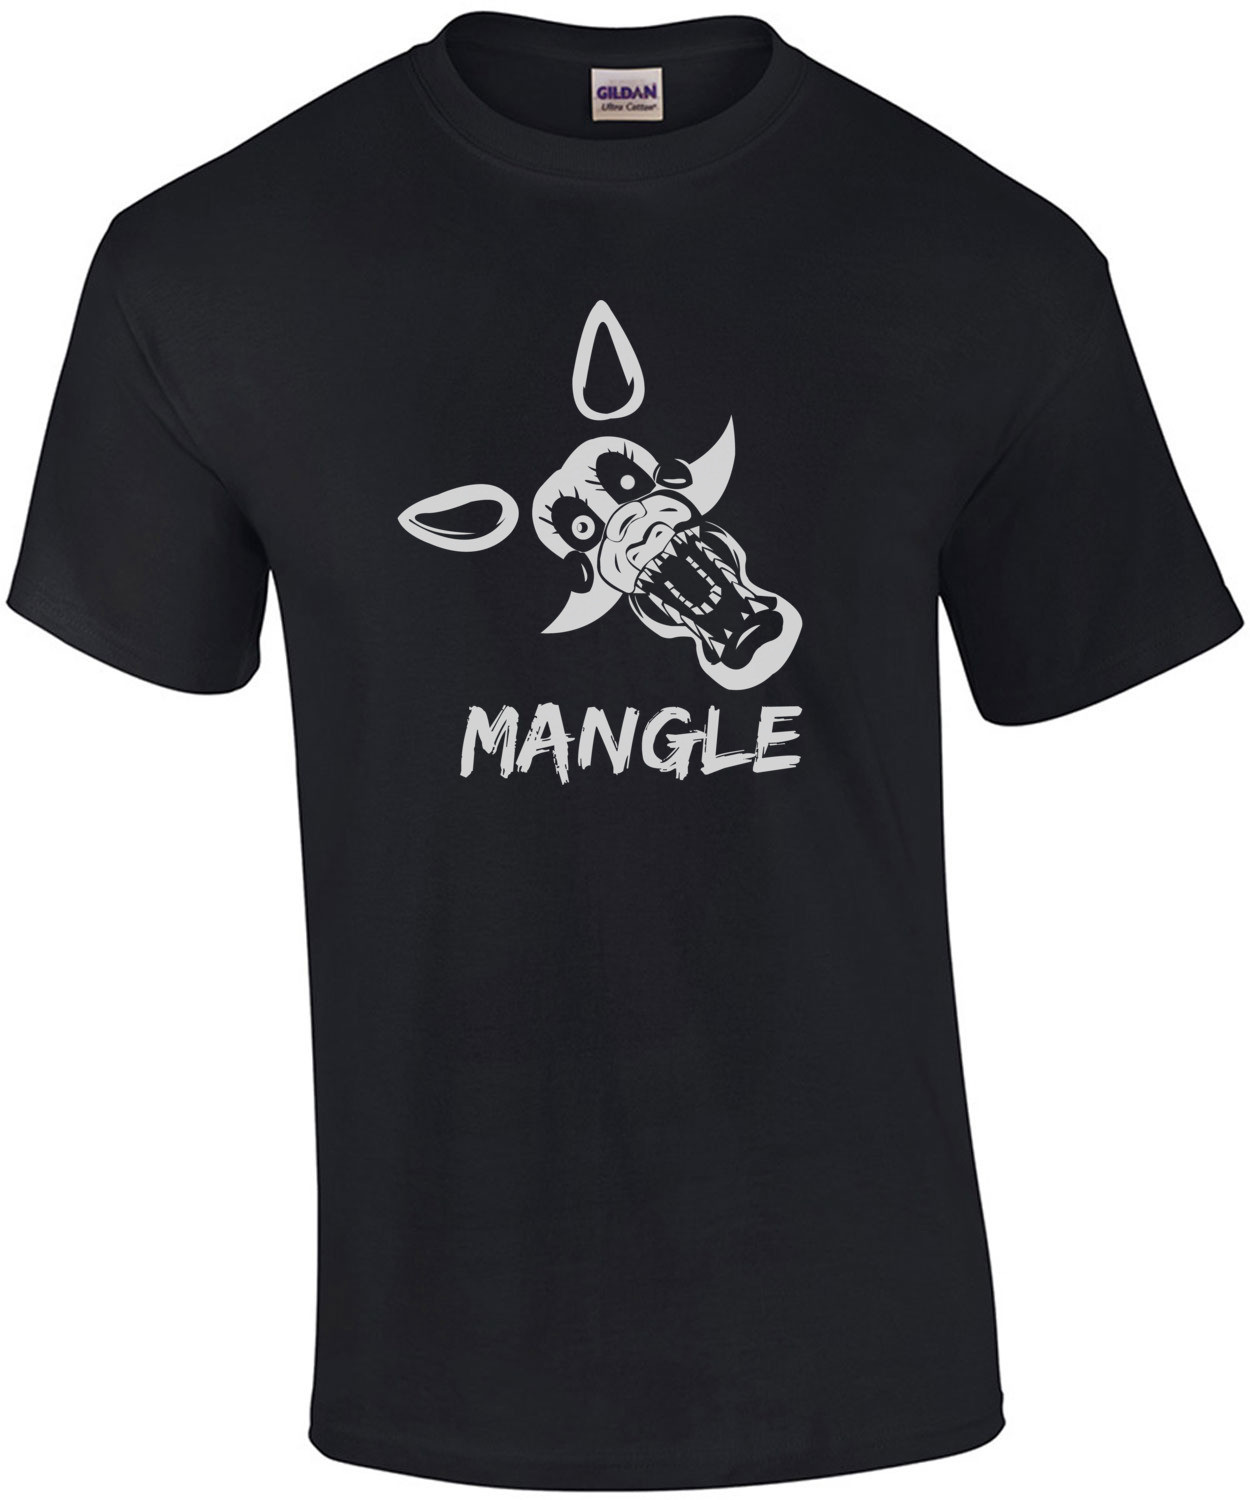 Mangle Five Nights At Freddy's t shirt